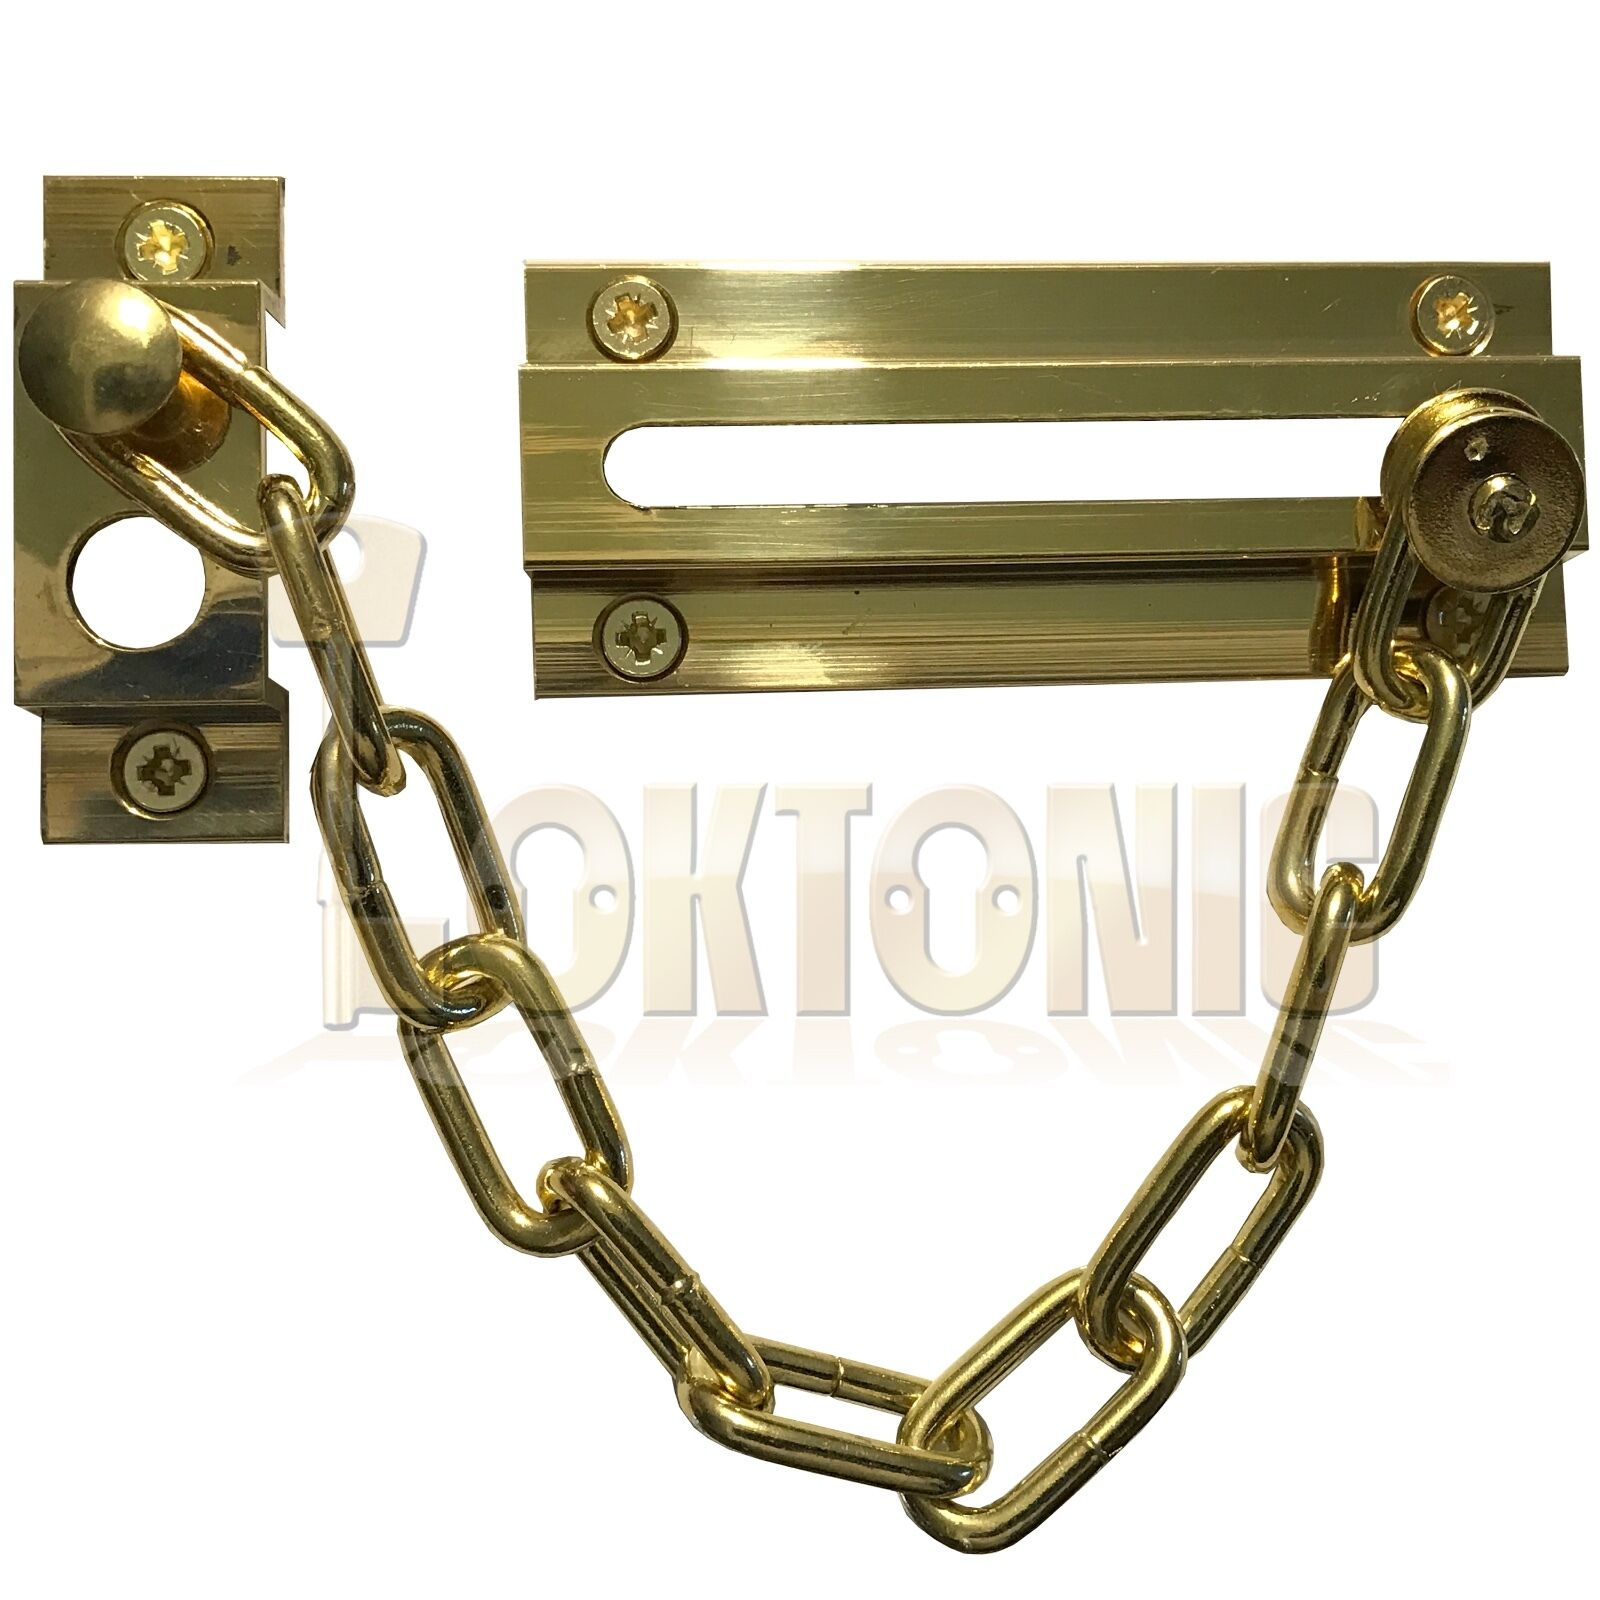 Strong Security Door Chain Heavy Duty Brass Safety Guard